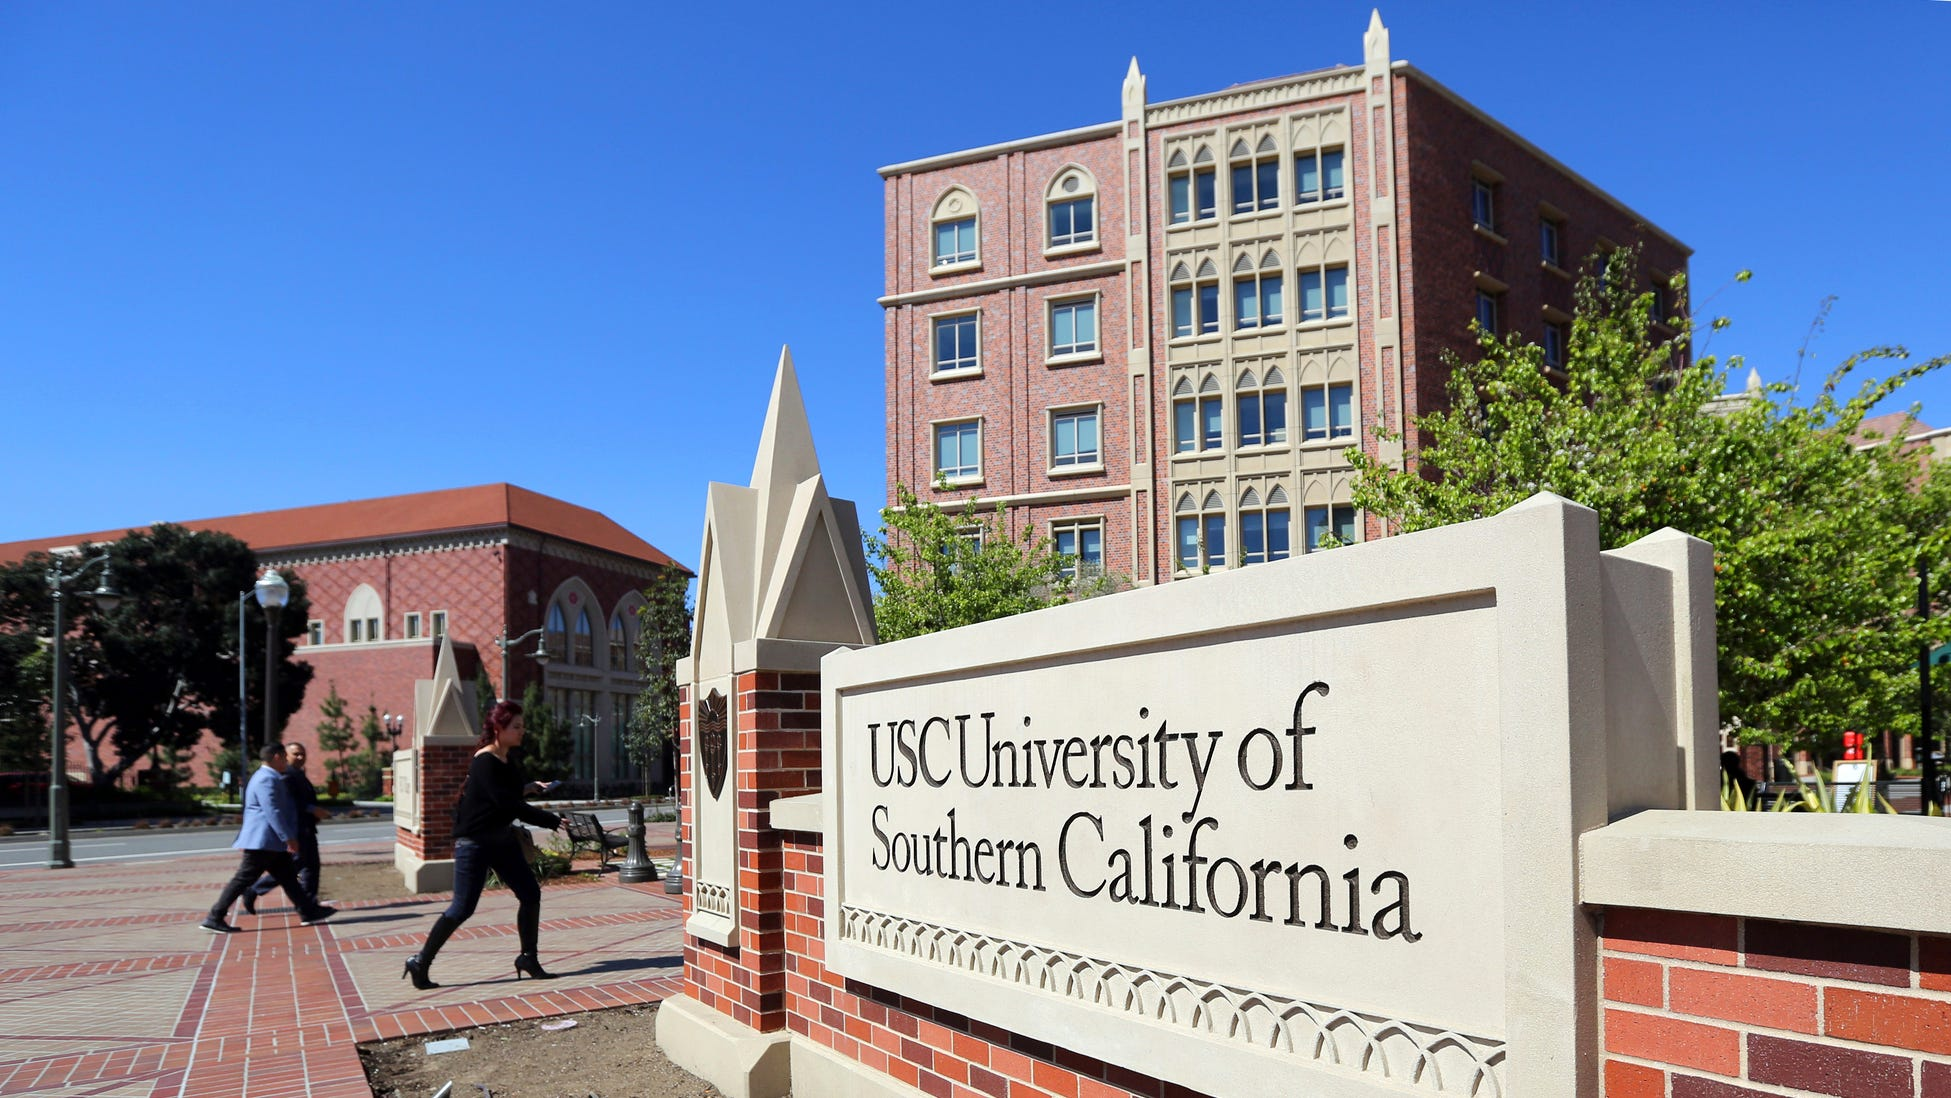 The University of Southern California took several students as part of what prosecutors said was a sweeping conspiracy by wealthy parents to use cheating and bribery to get their children into selective colleges.